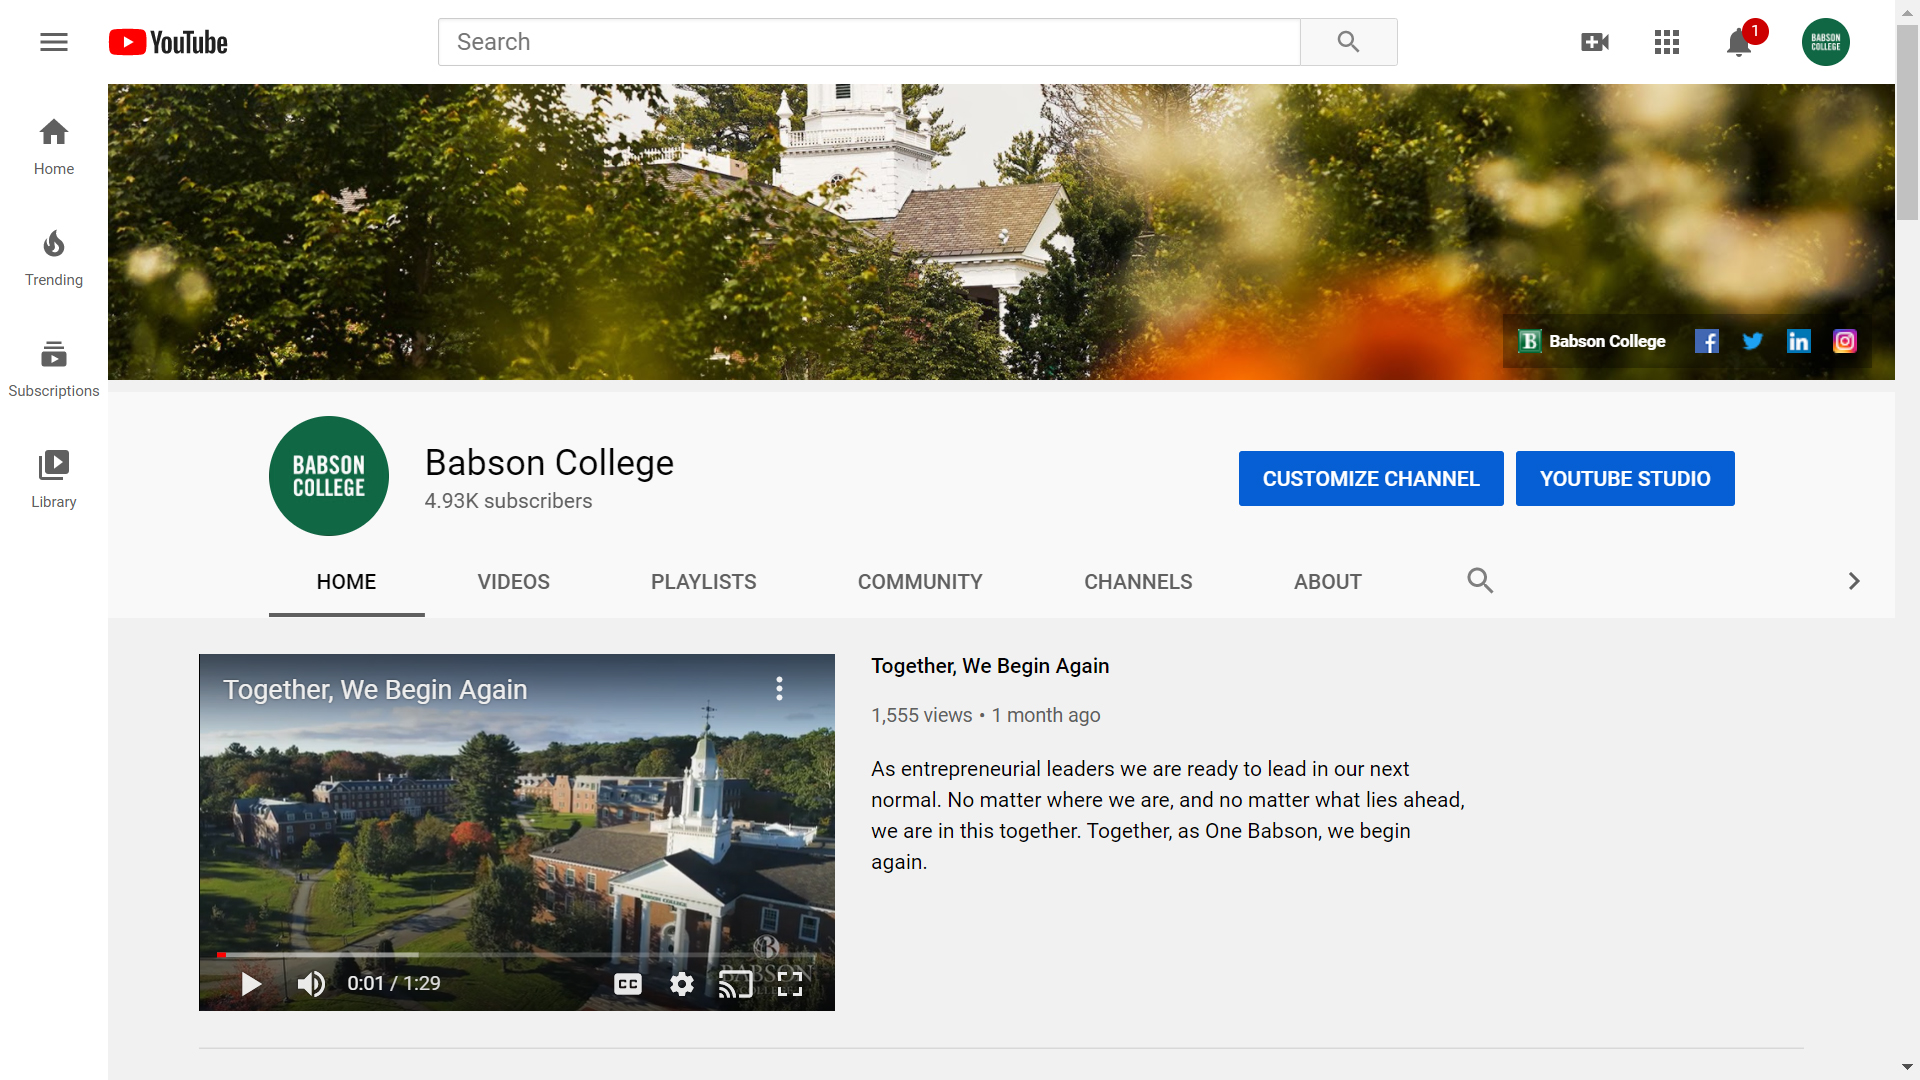 Babson College on YouTube